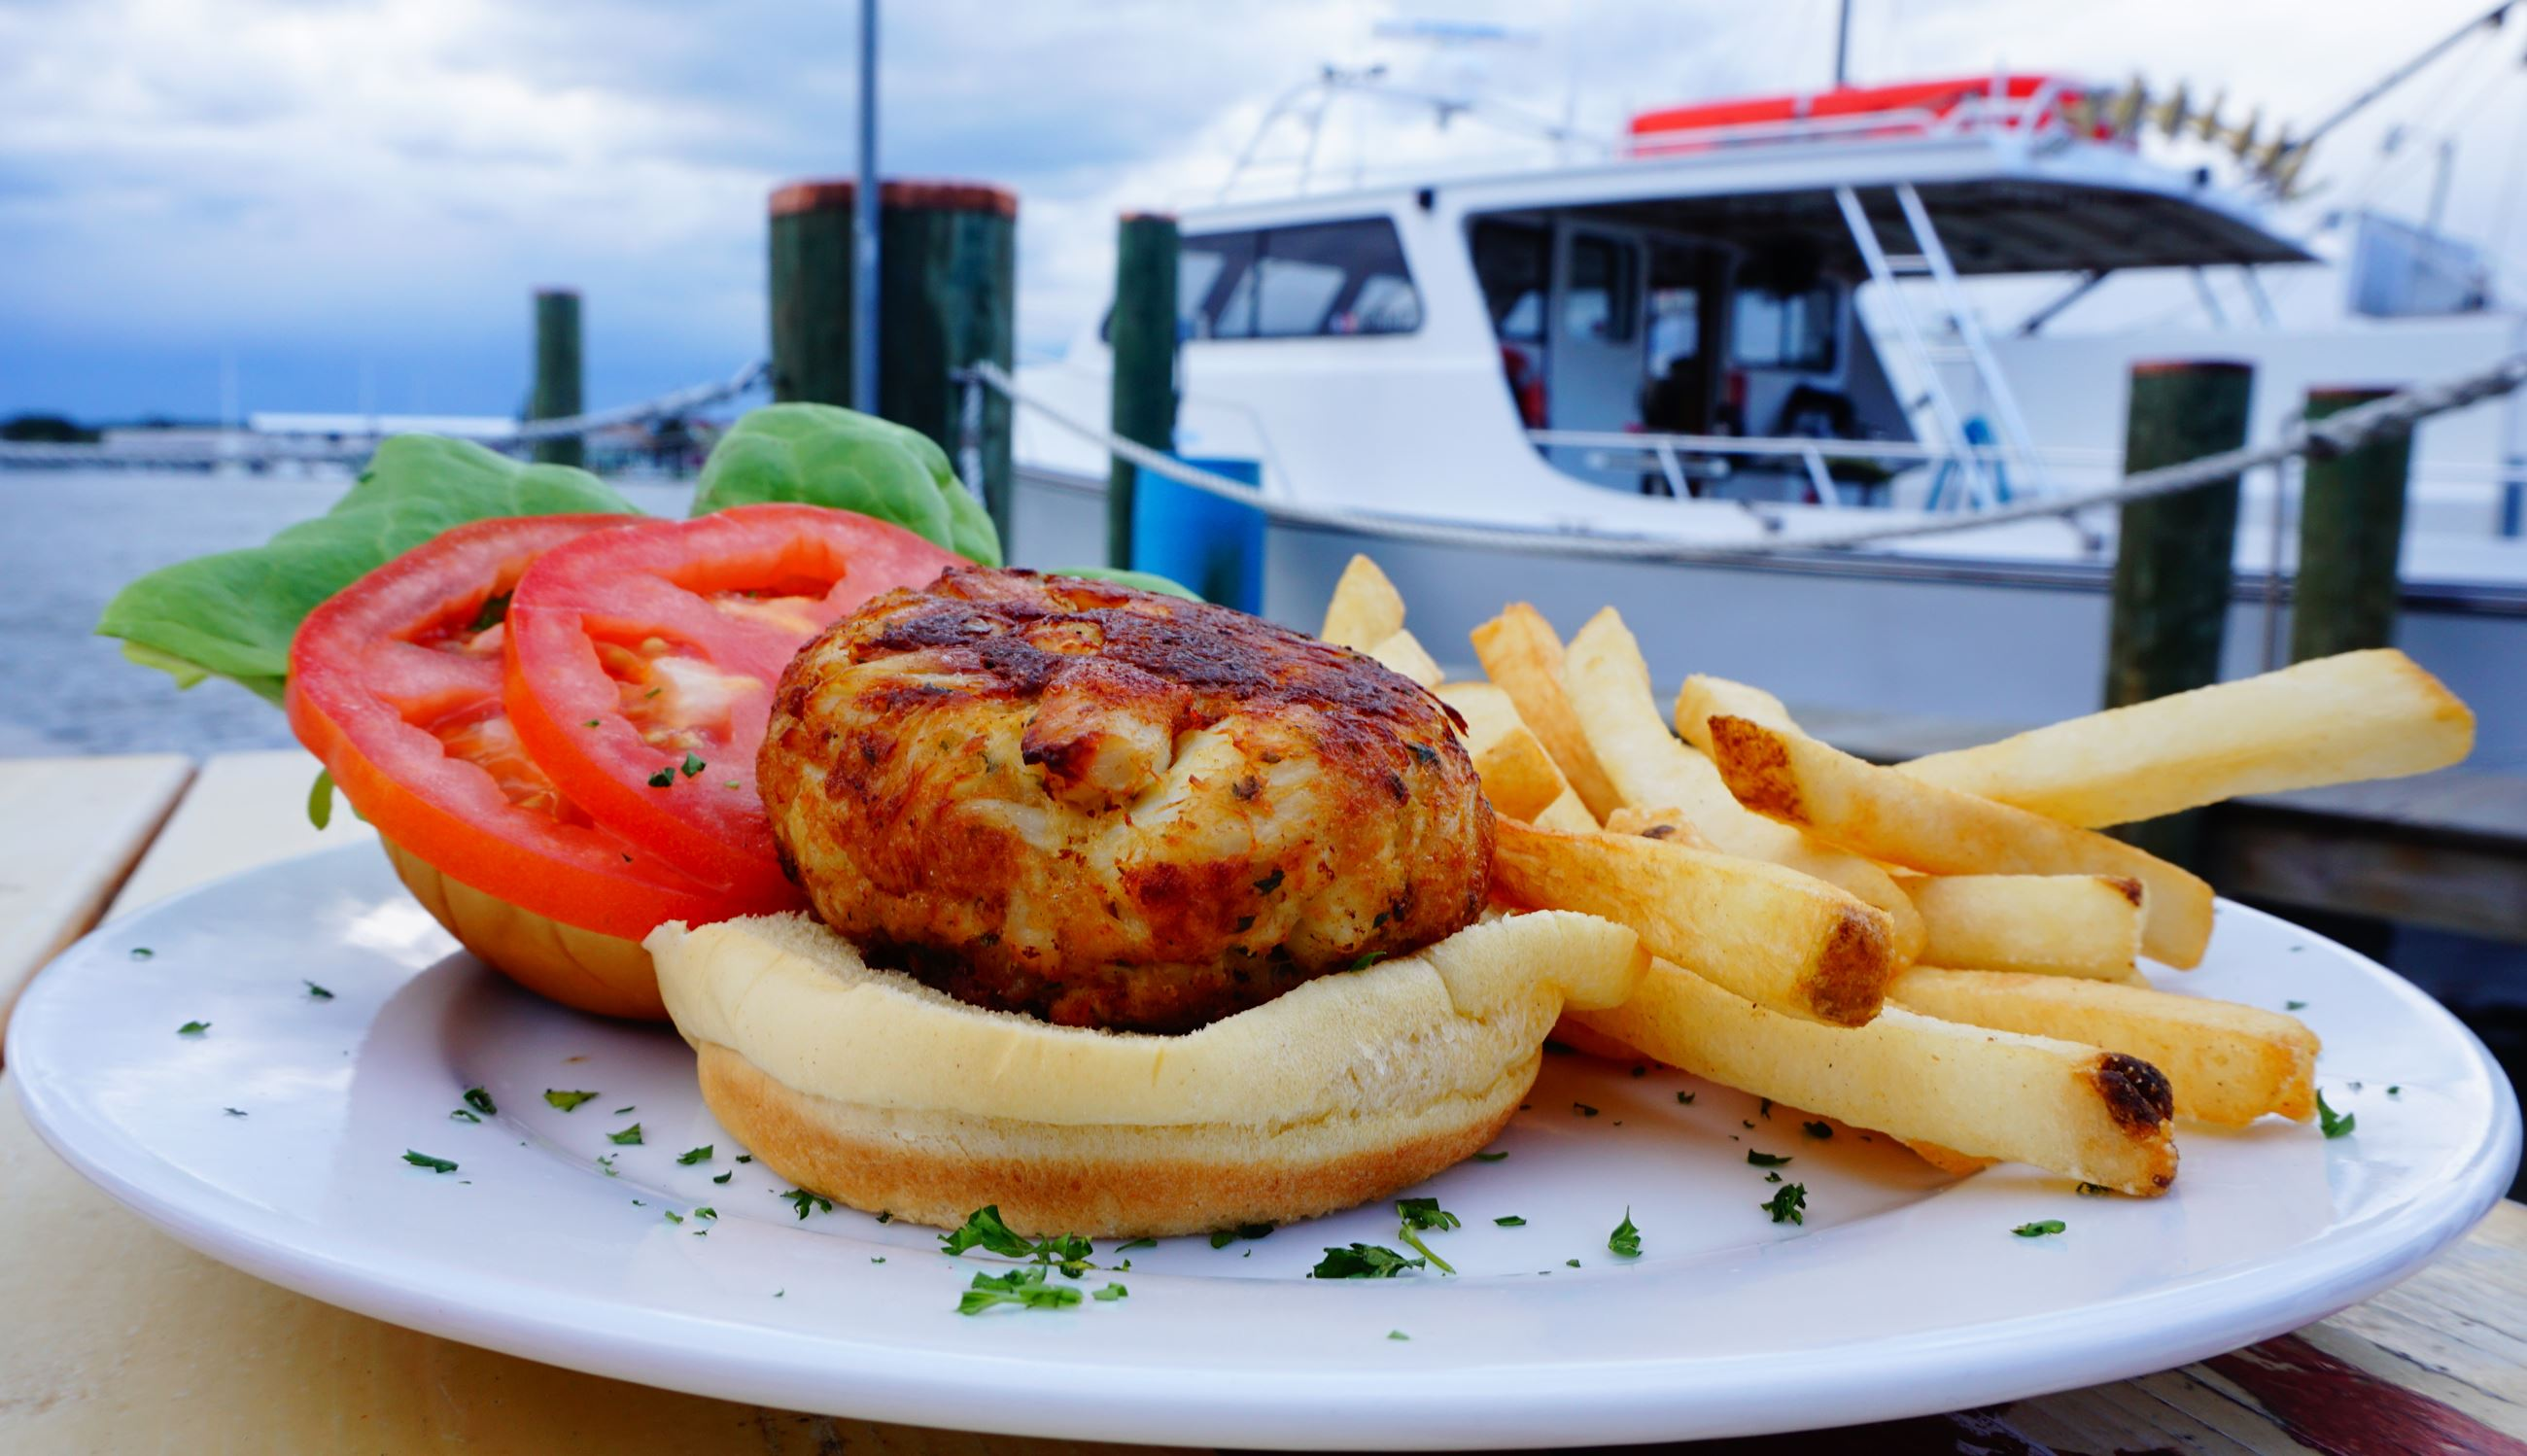 Harris Crabhouse crabcake with boat Brian Suite photo credit